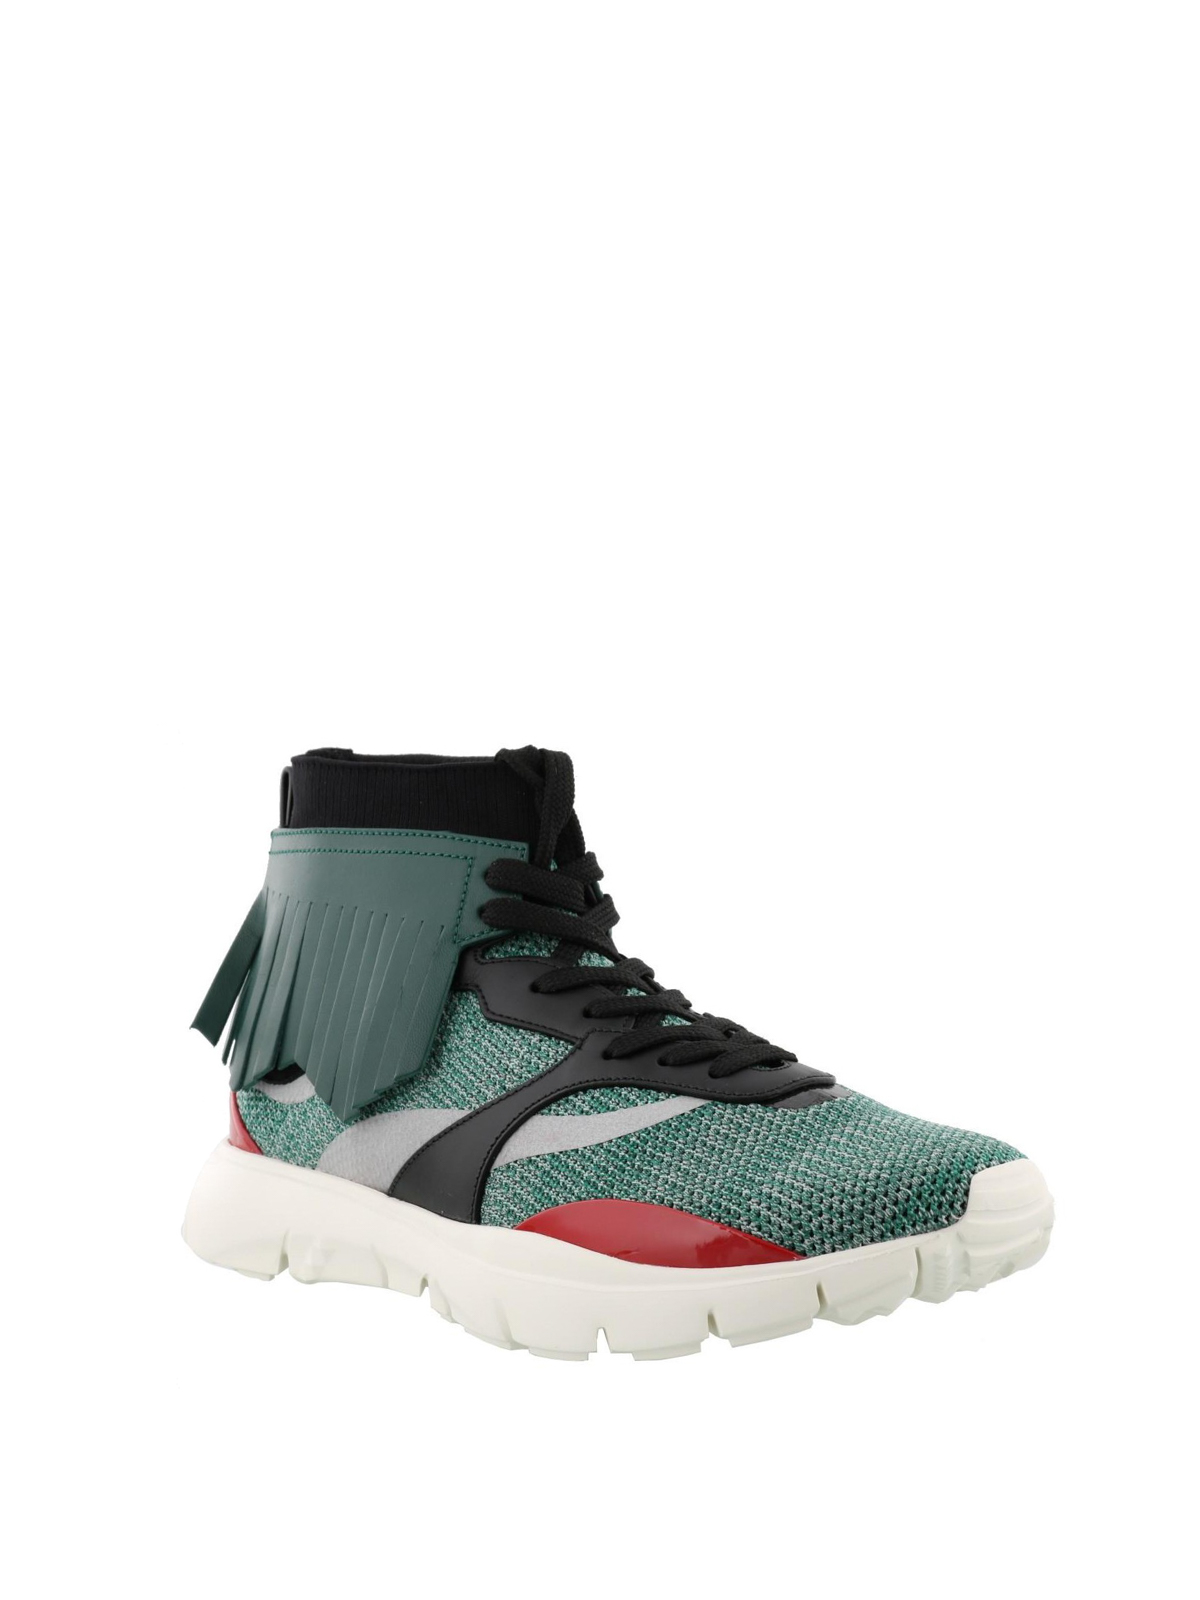 Heroes Tribe knit fabric sneakers